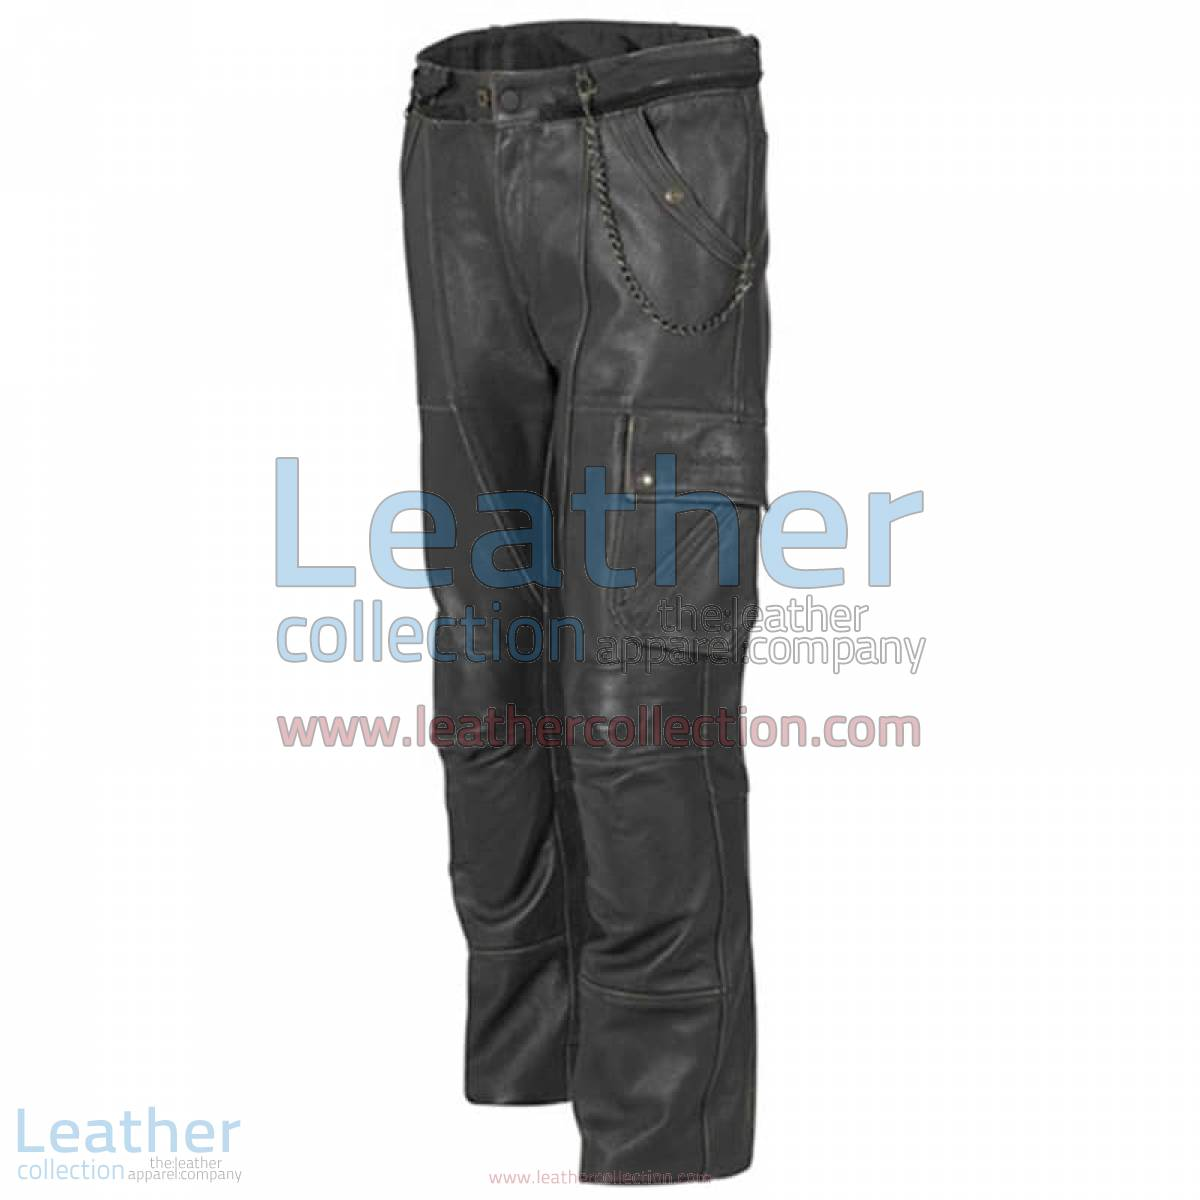 Classic Leather Trousers   classic trousers